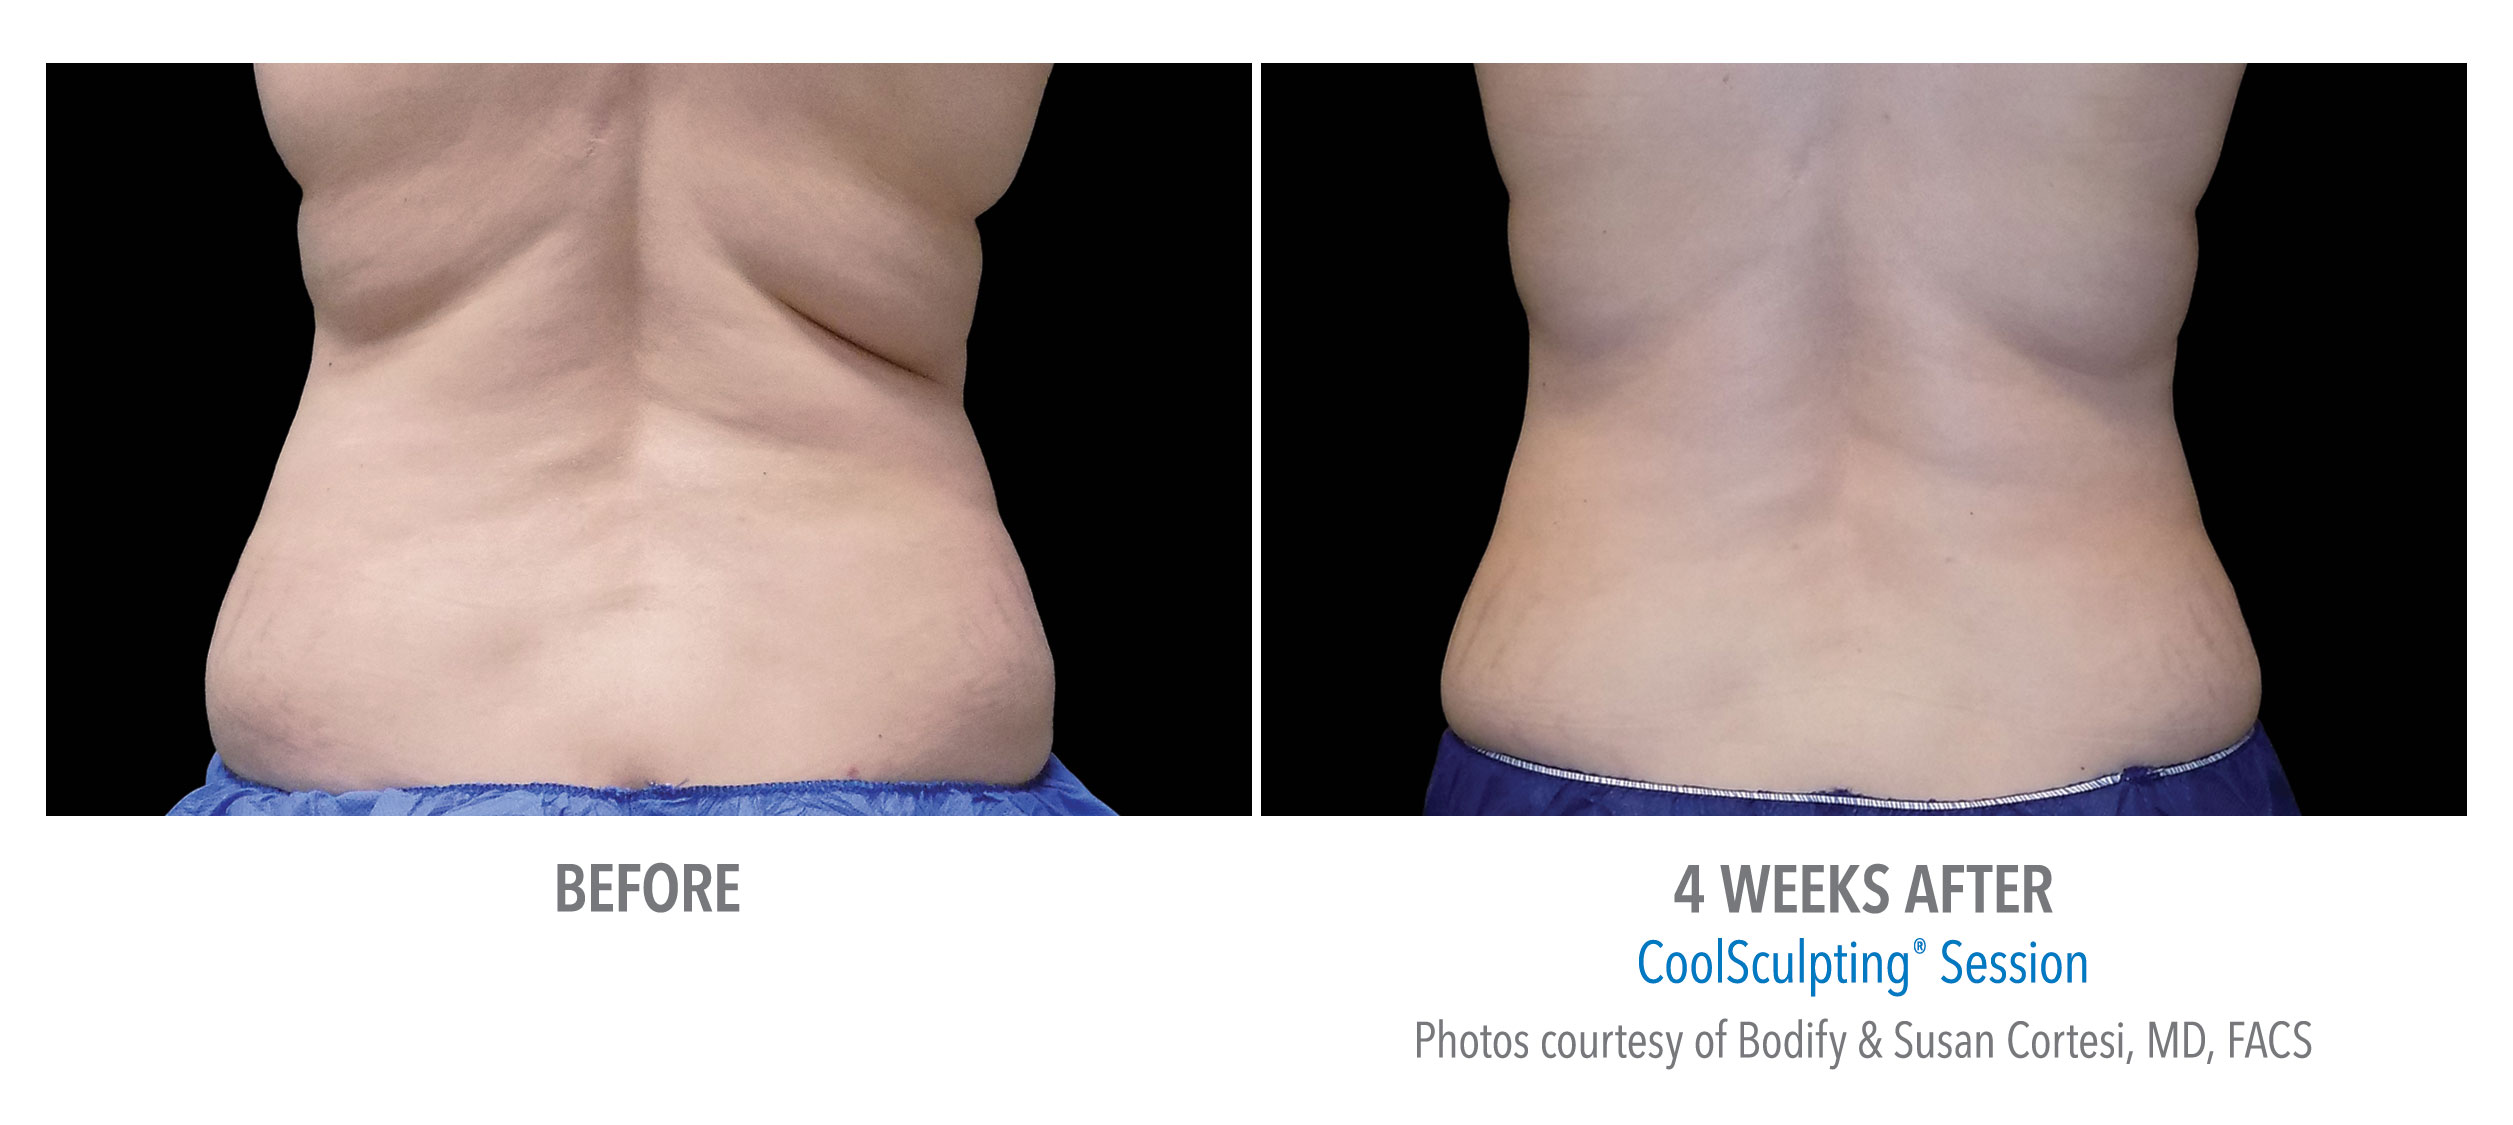 torrance-coolsculpting-back-flank-lower flank-coolsculpting2